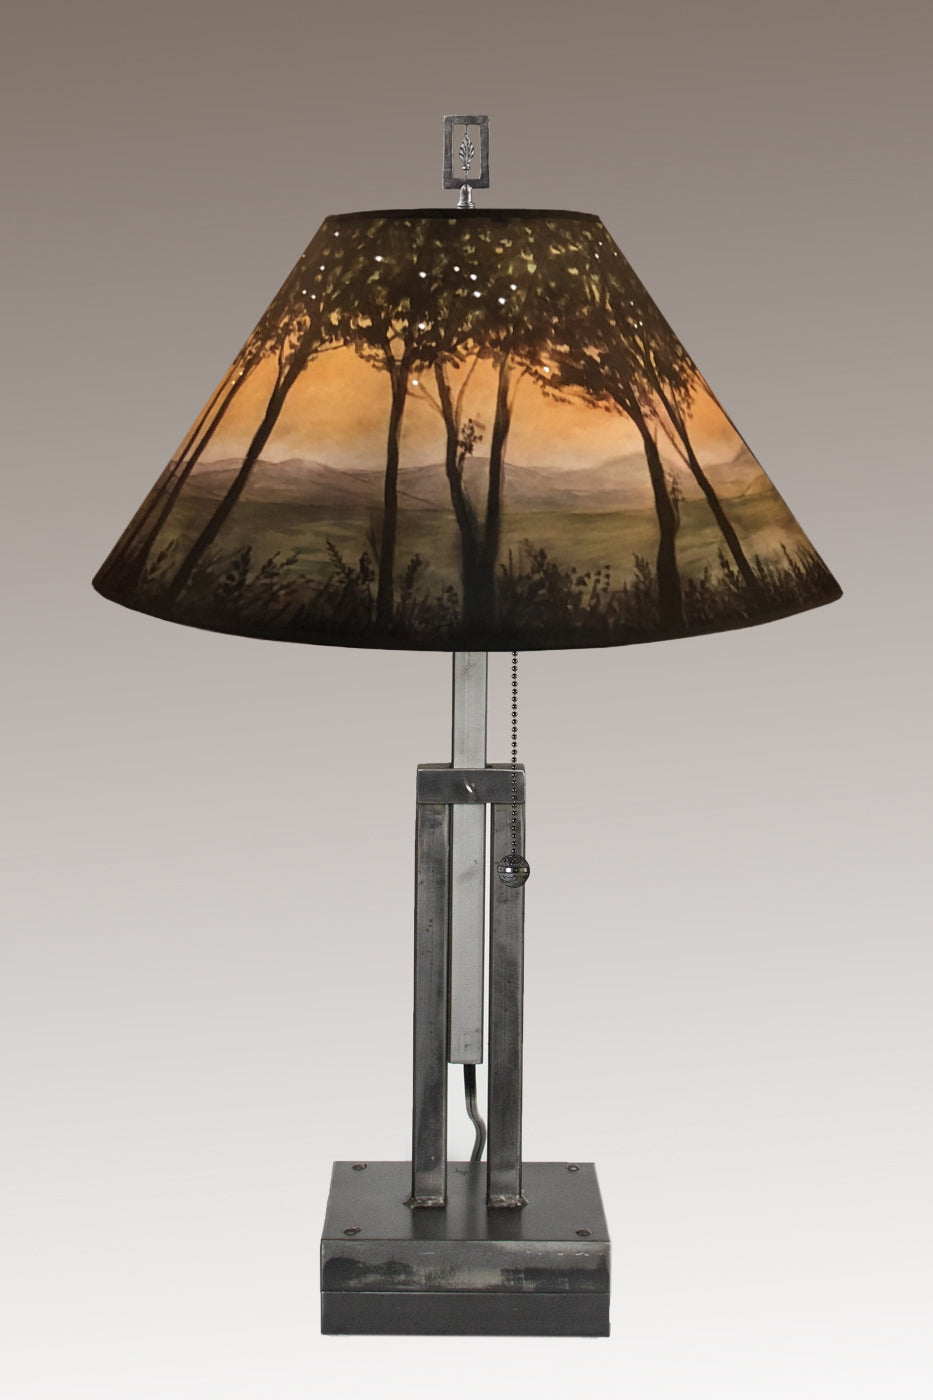 Adjustable-Height Steel Table Lamp with Large Conical Shade in Dawn